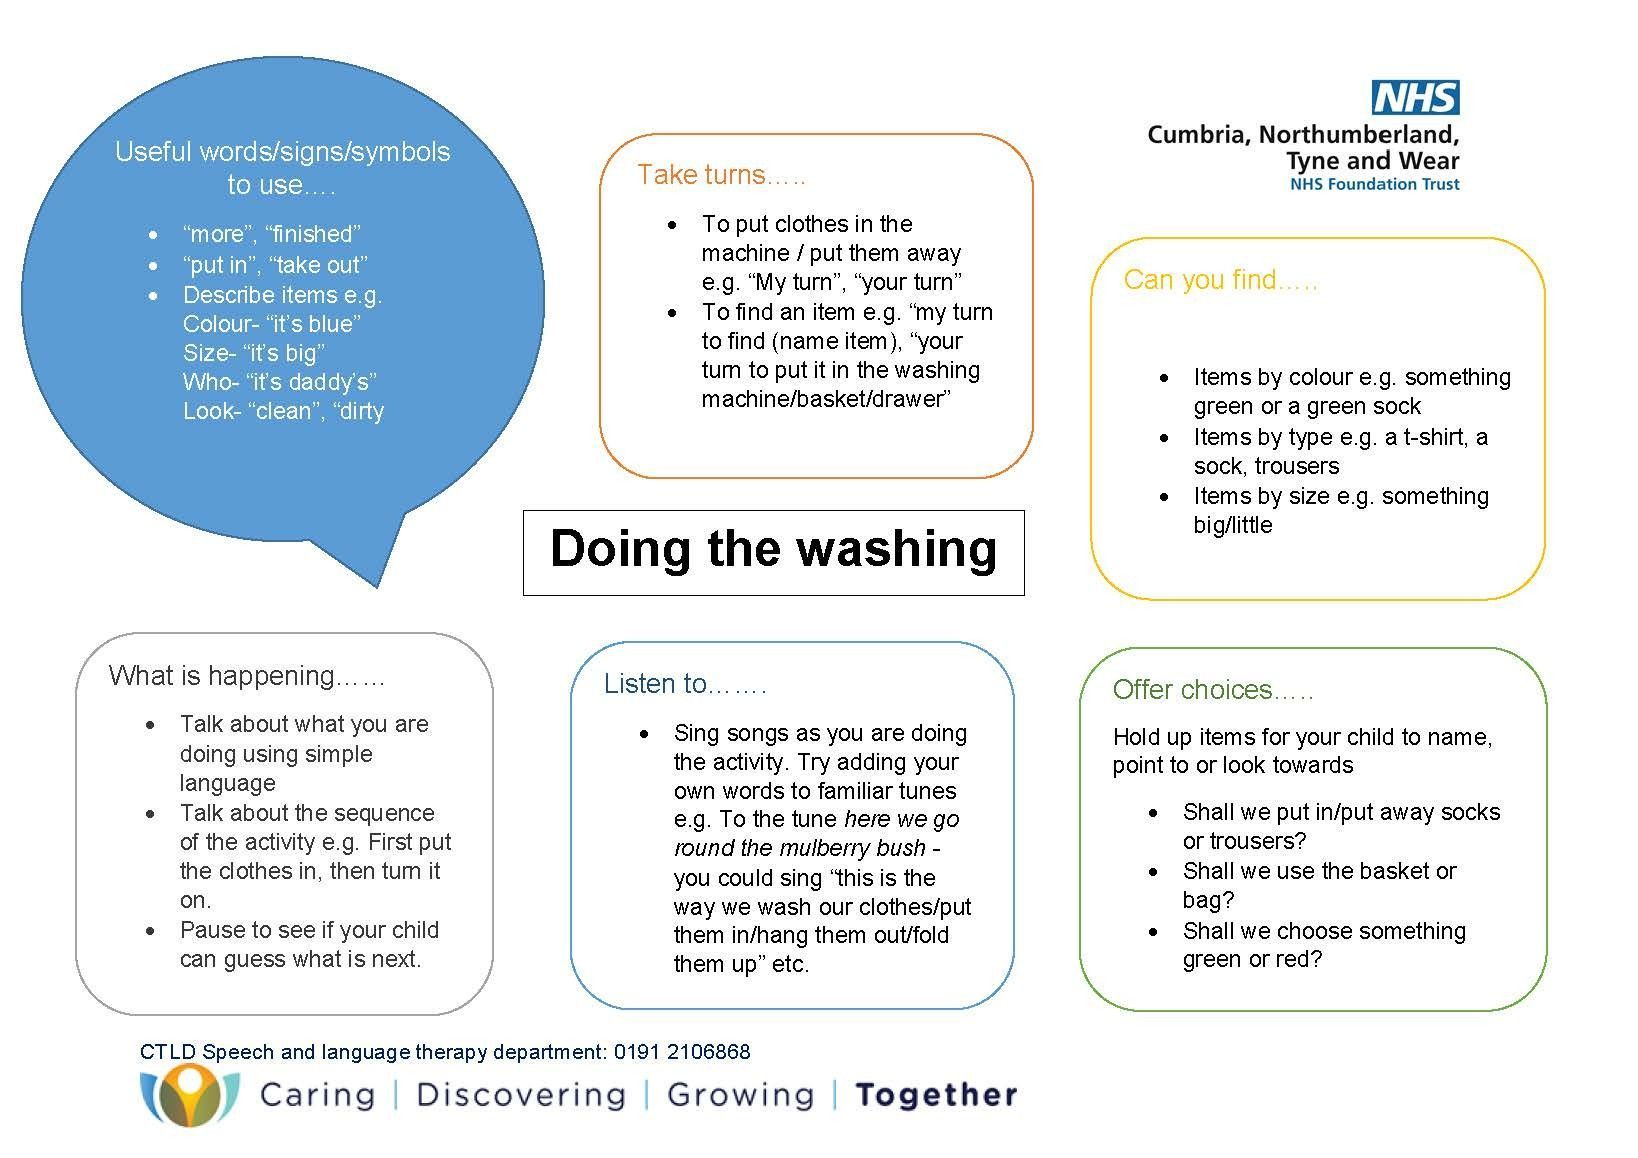 SALT Team - Doing the Washing Activity